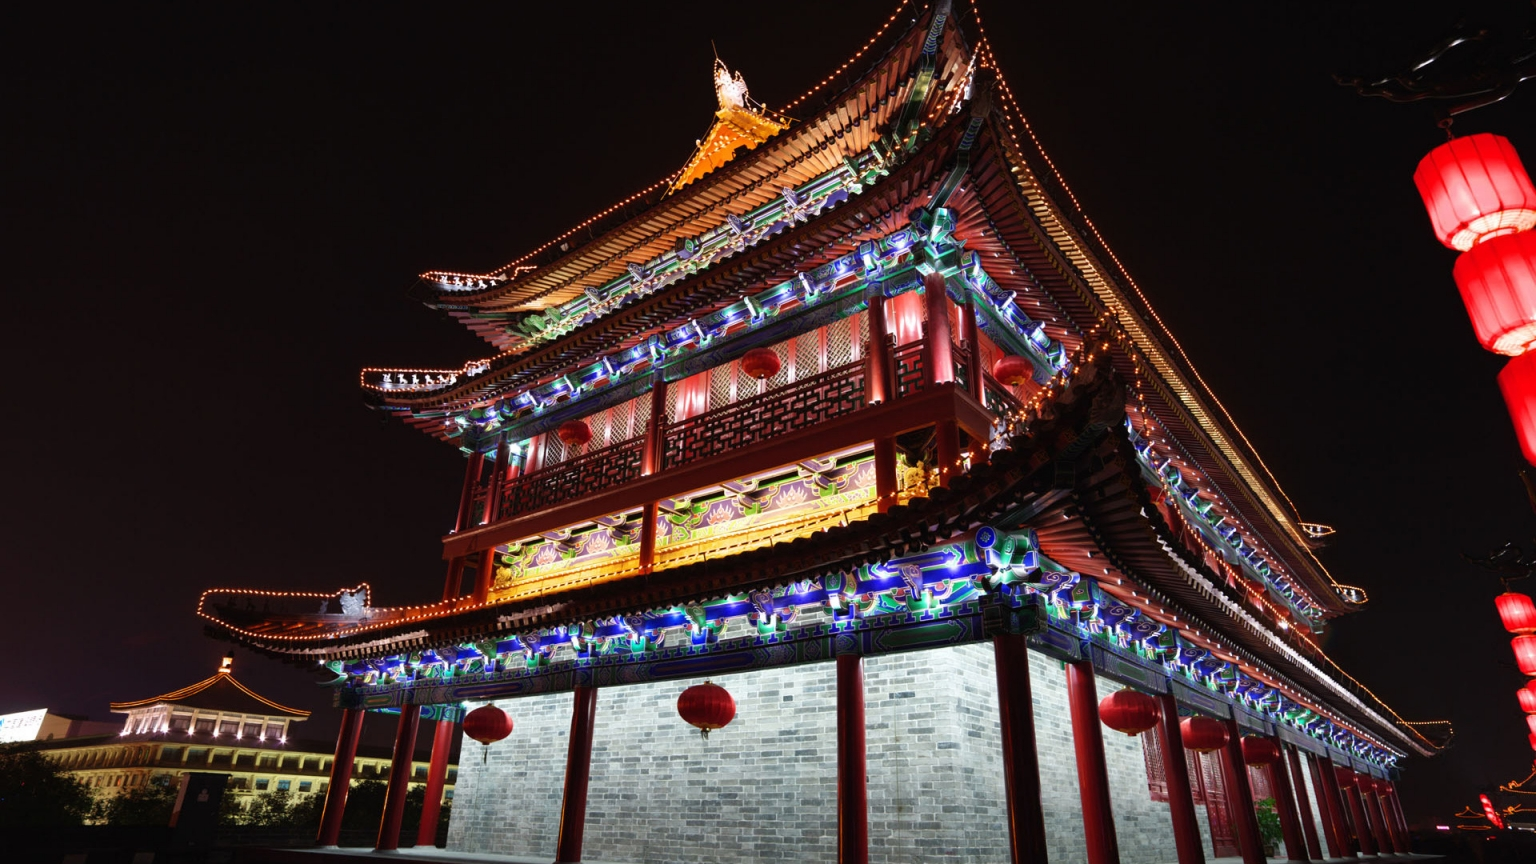 Chinese Architecture for 1536 x 864 HDTV resolution